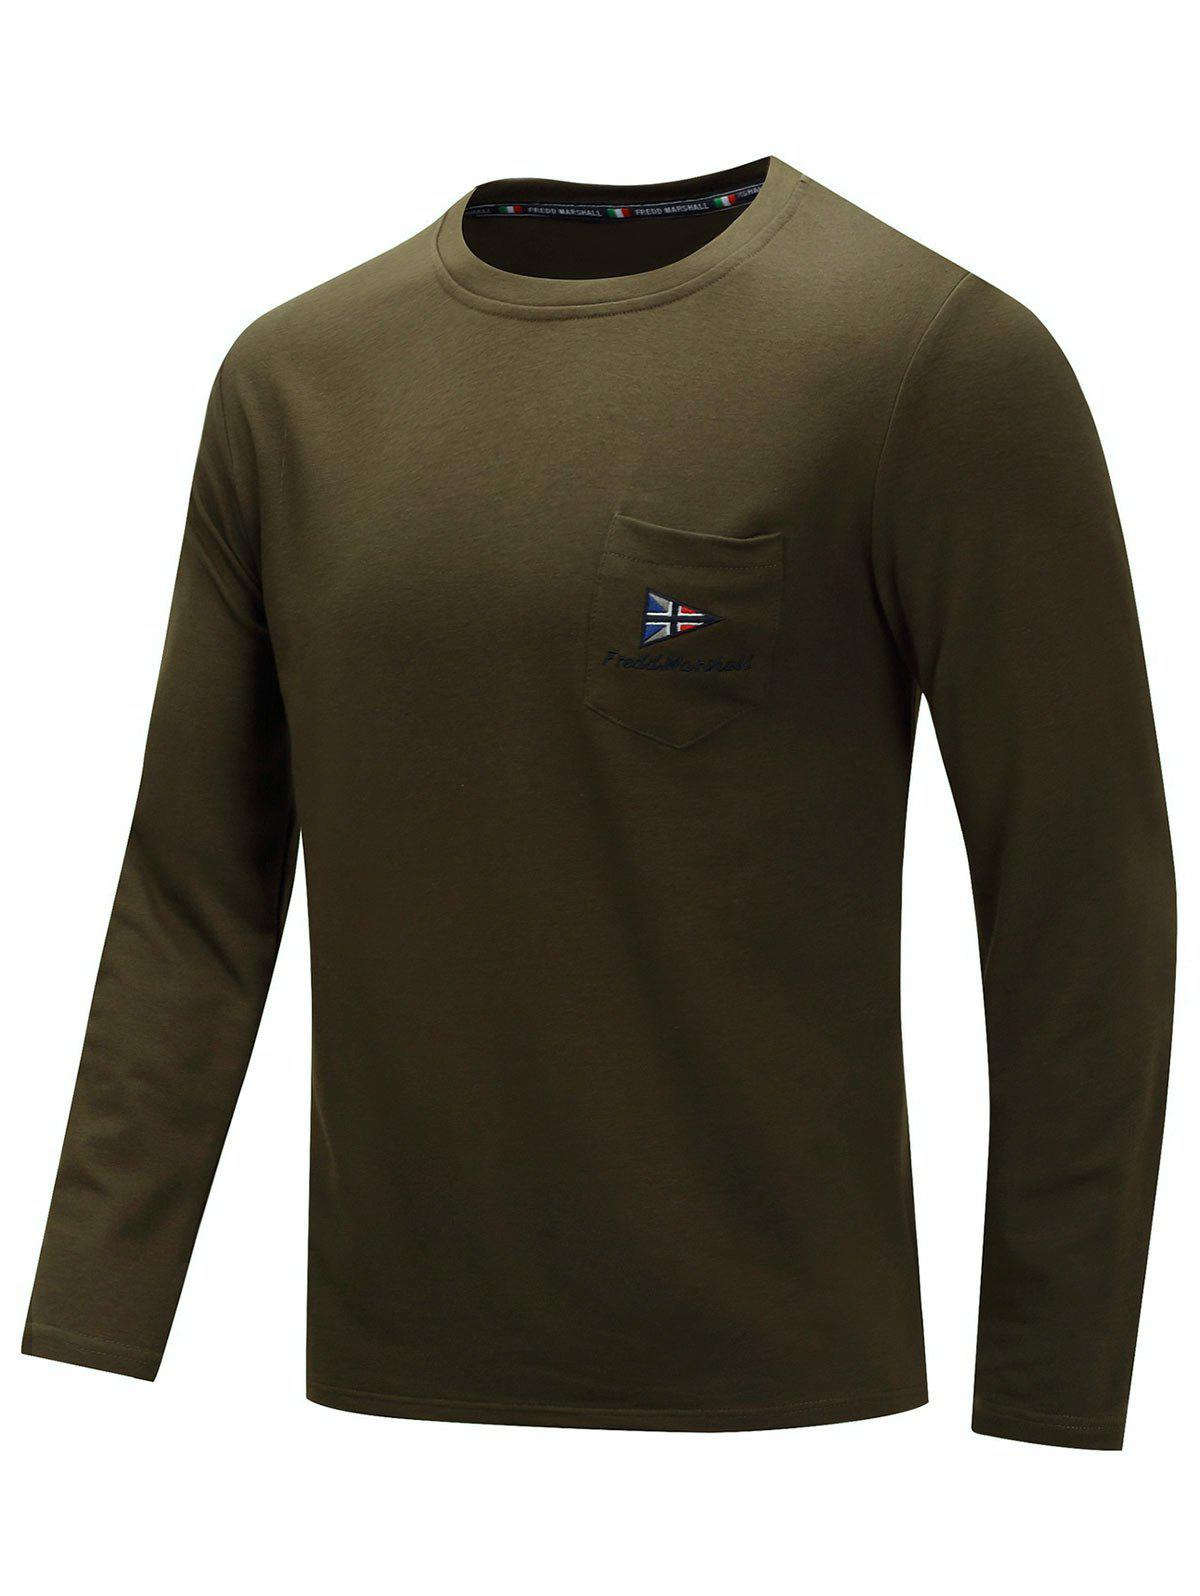 Casual Embroidery Chest Pocket Long Sleeve T-shirt - ARMY GREEN XL